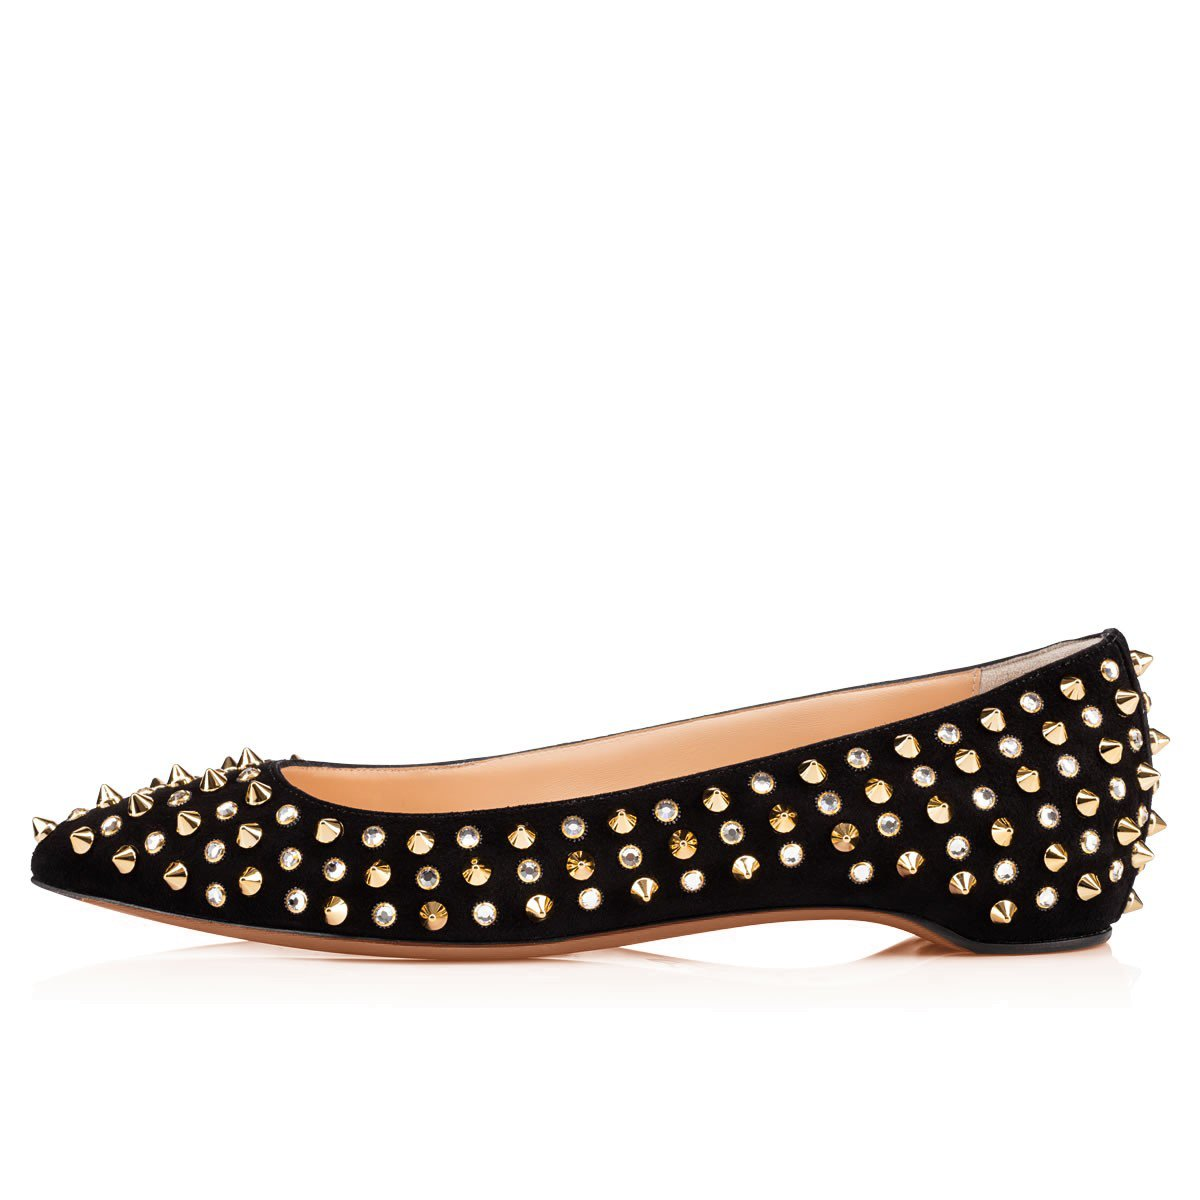 Mermaid Women's Shoes Pointed Toe Spiked Rivets Comfortable Flats B071R7VYP8 US12 Feet length 10.82